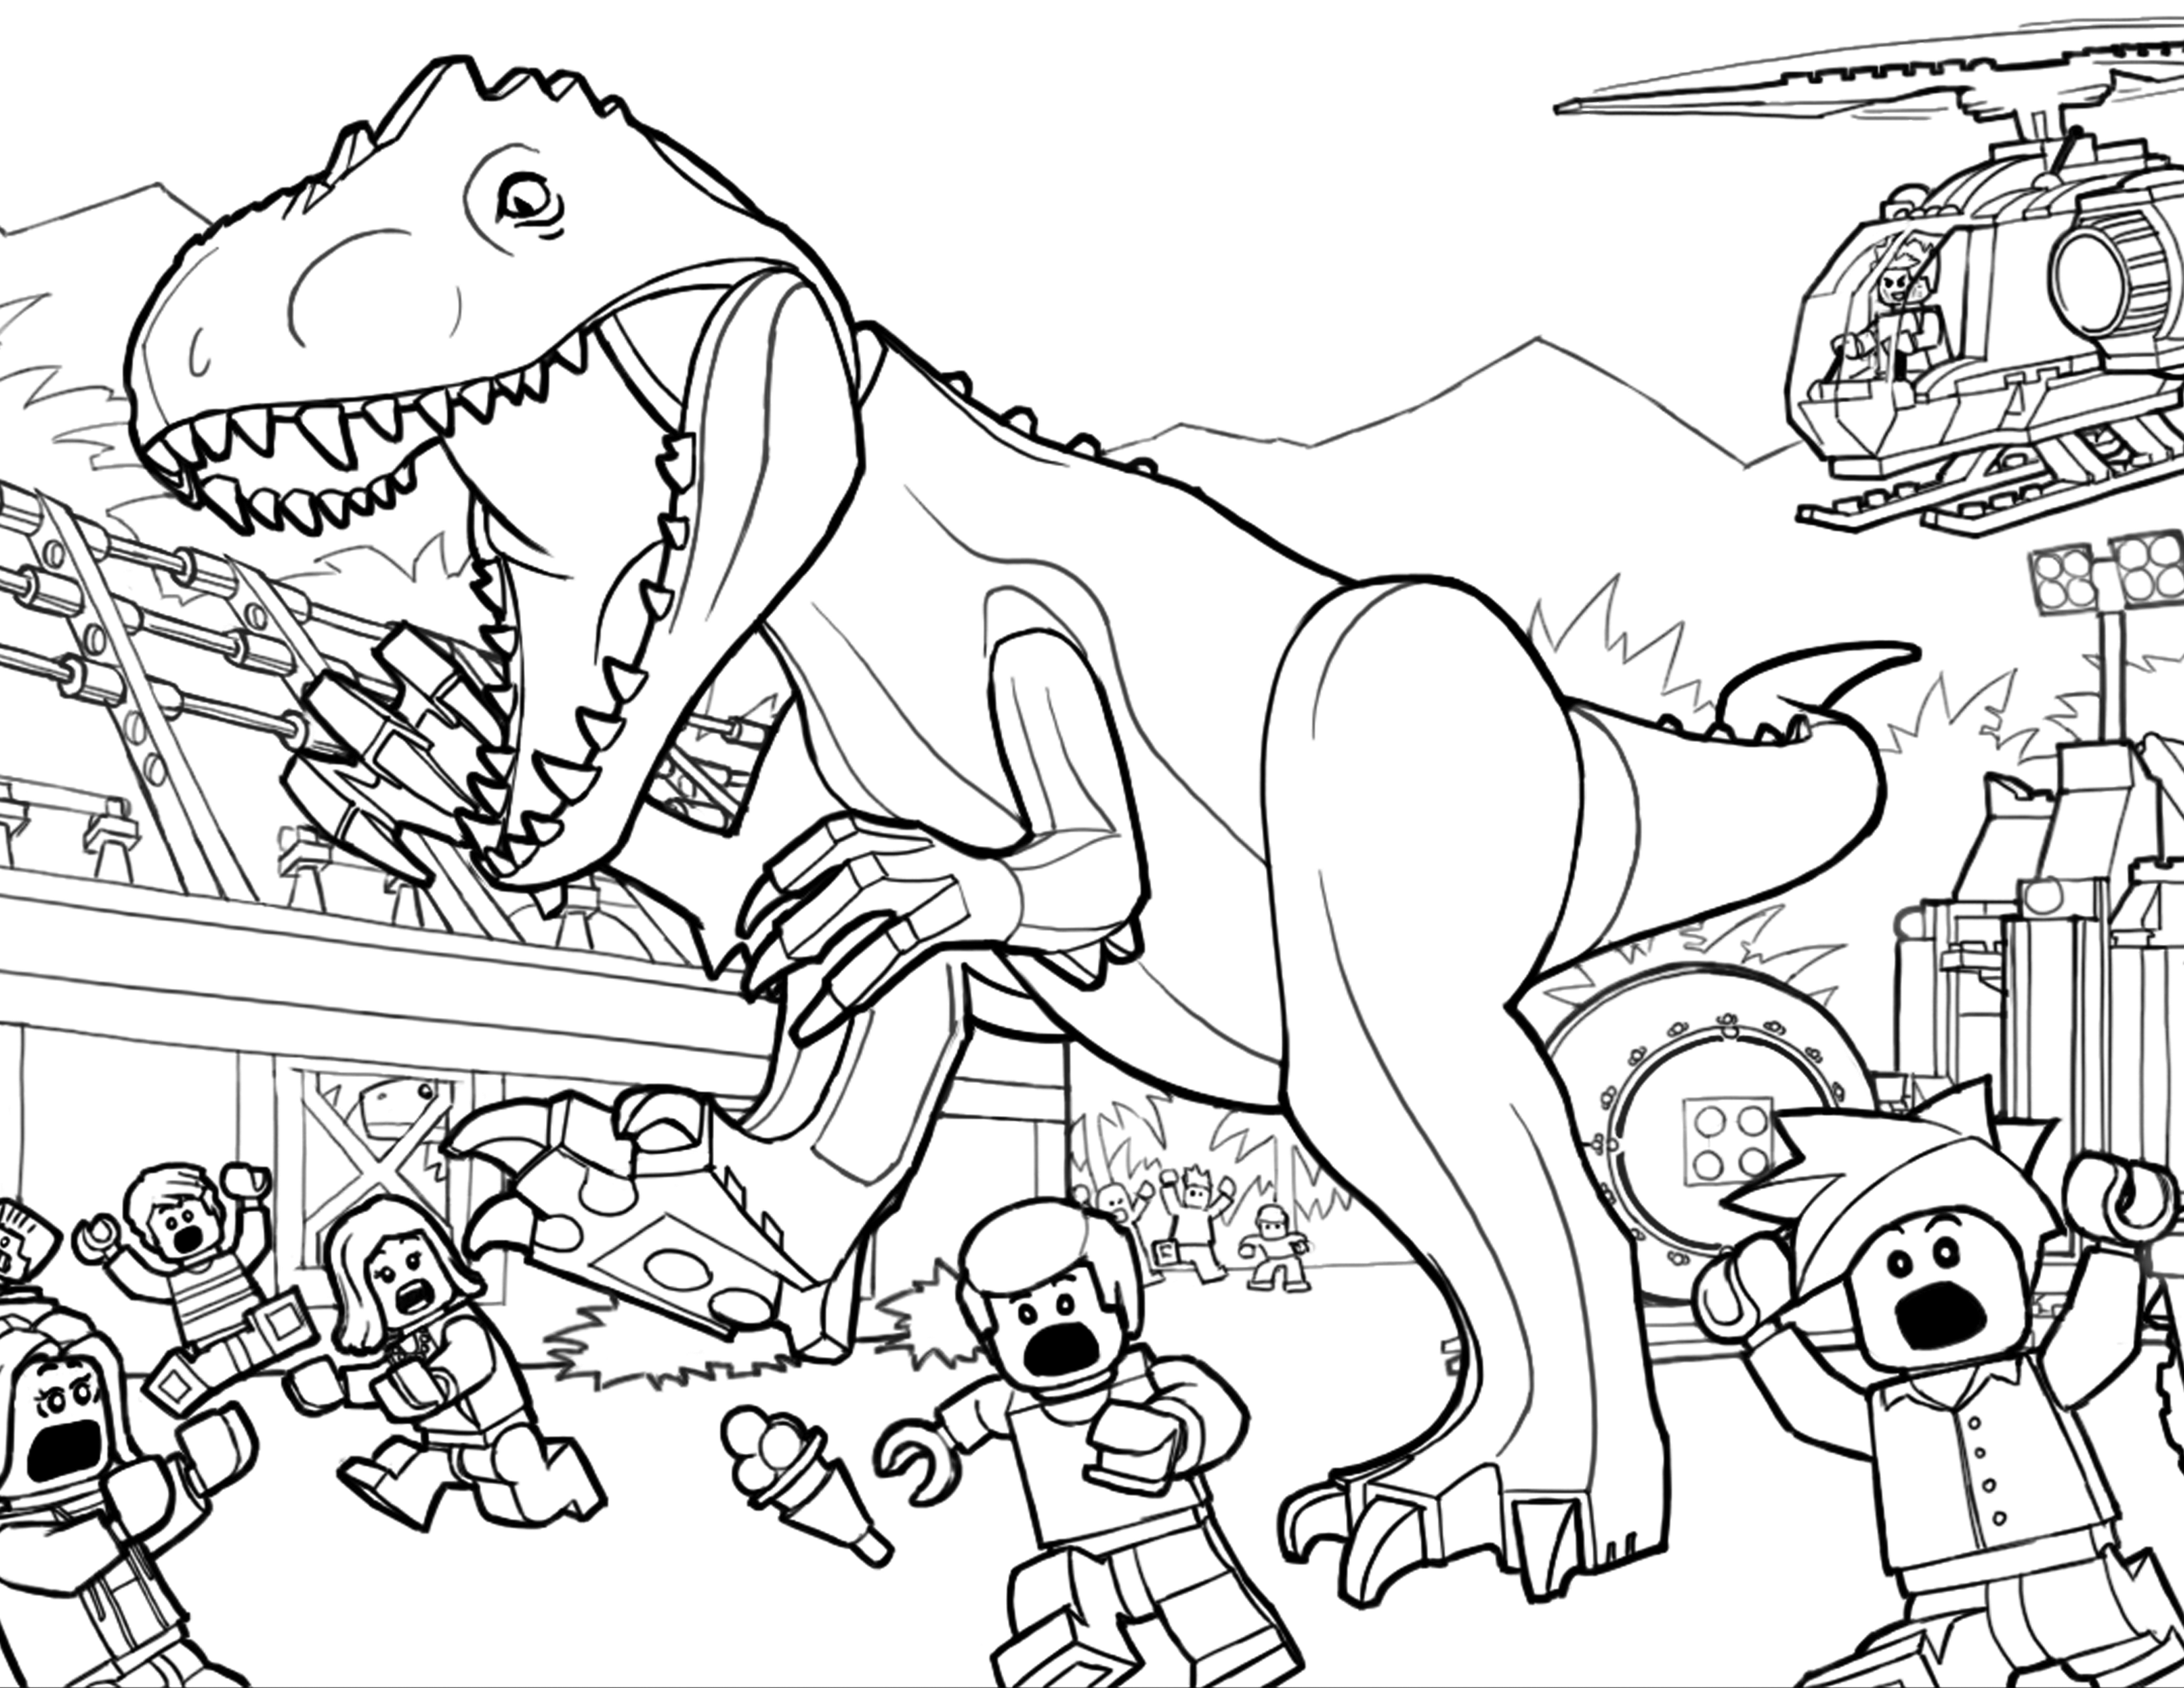 kids t rex coloring page trex coloring pages best coloring pages for kids kids coloring rex t page